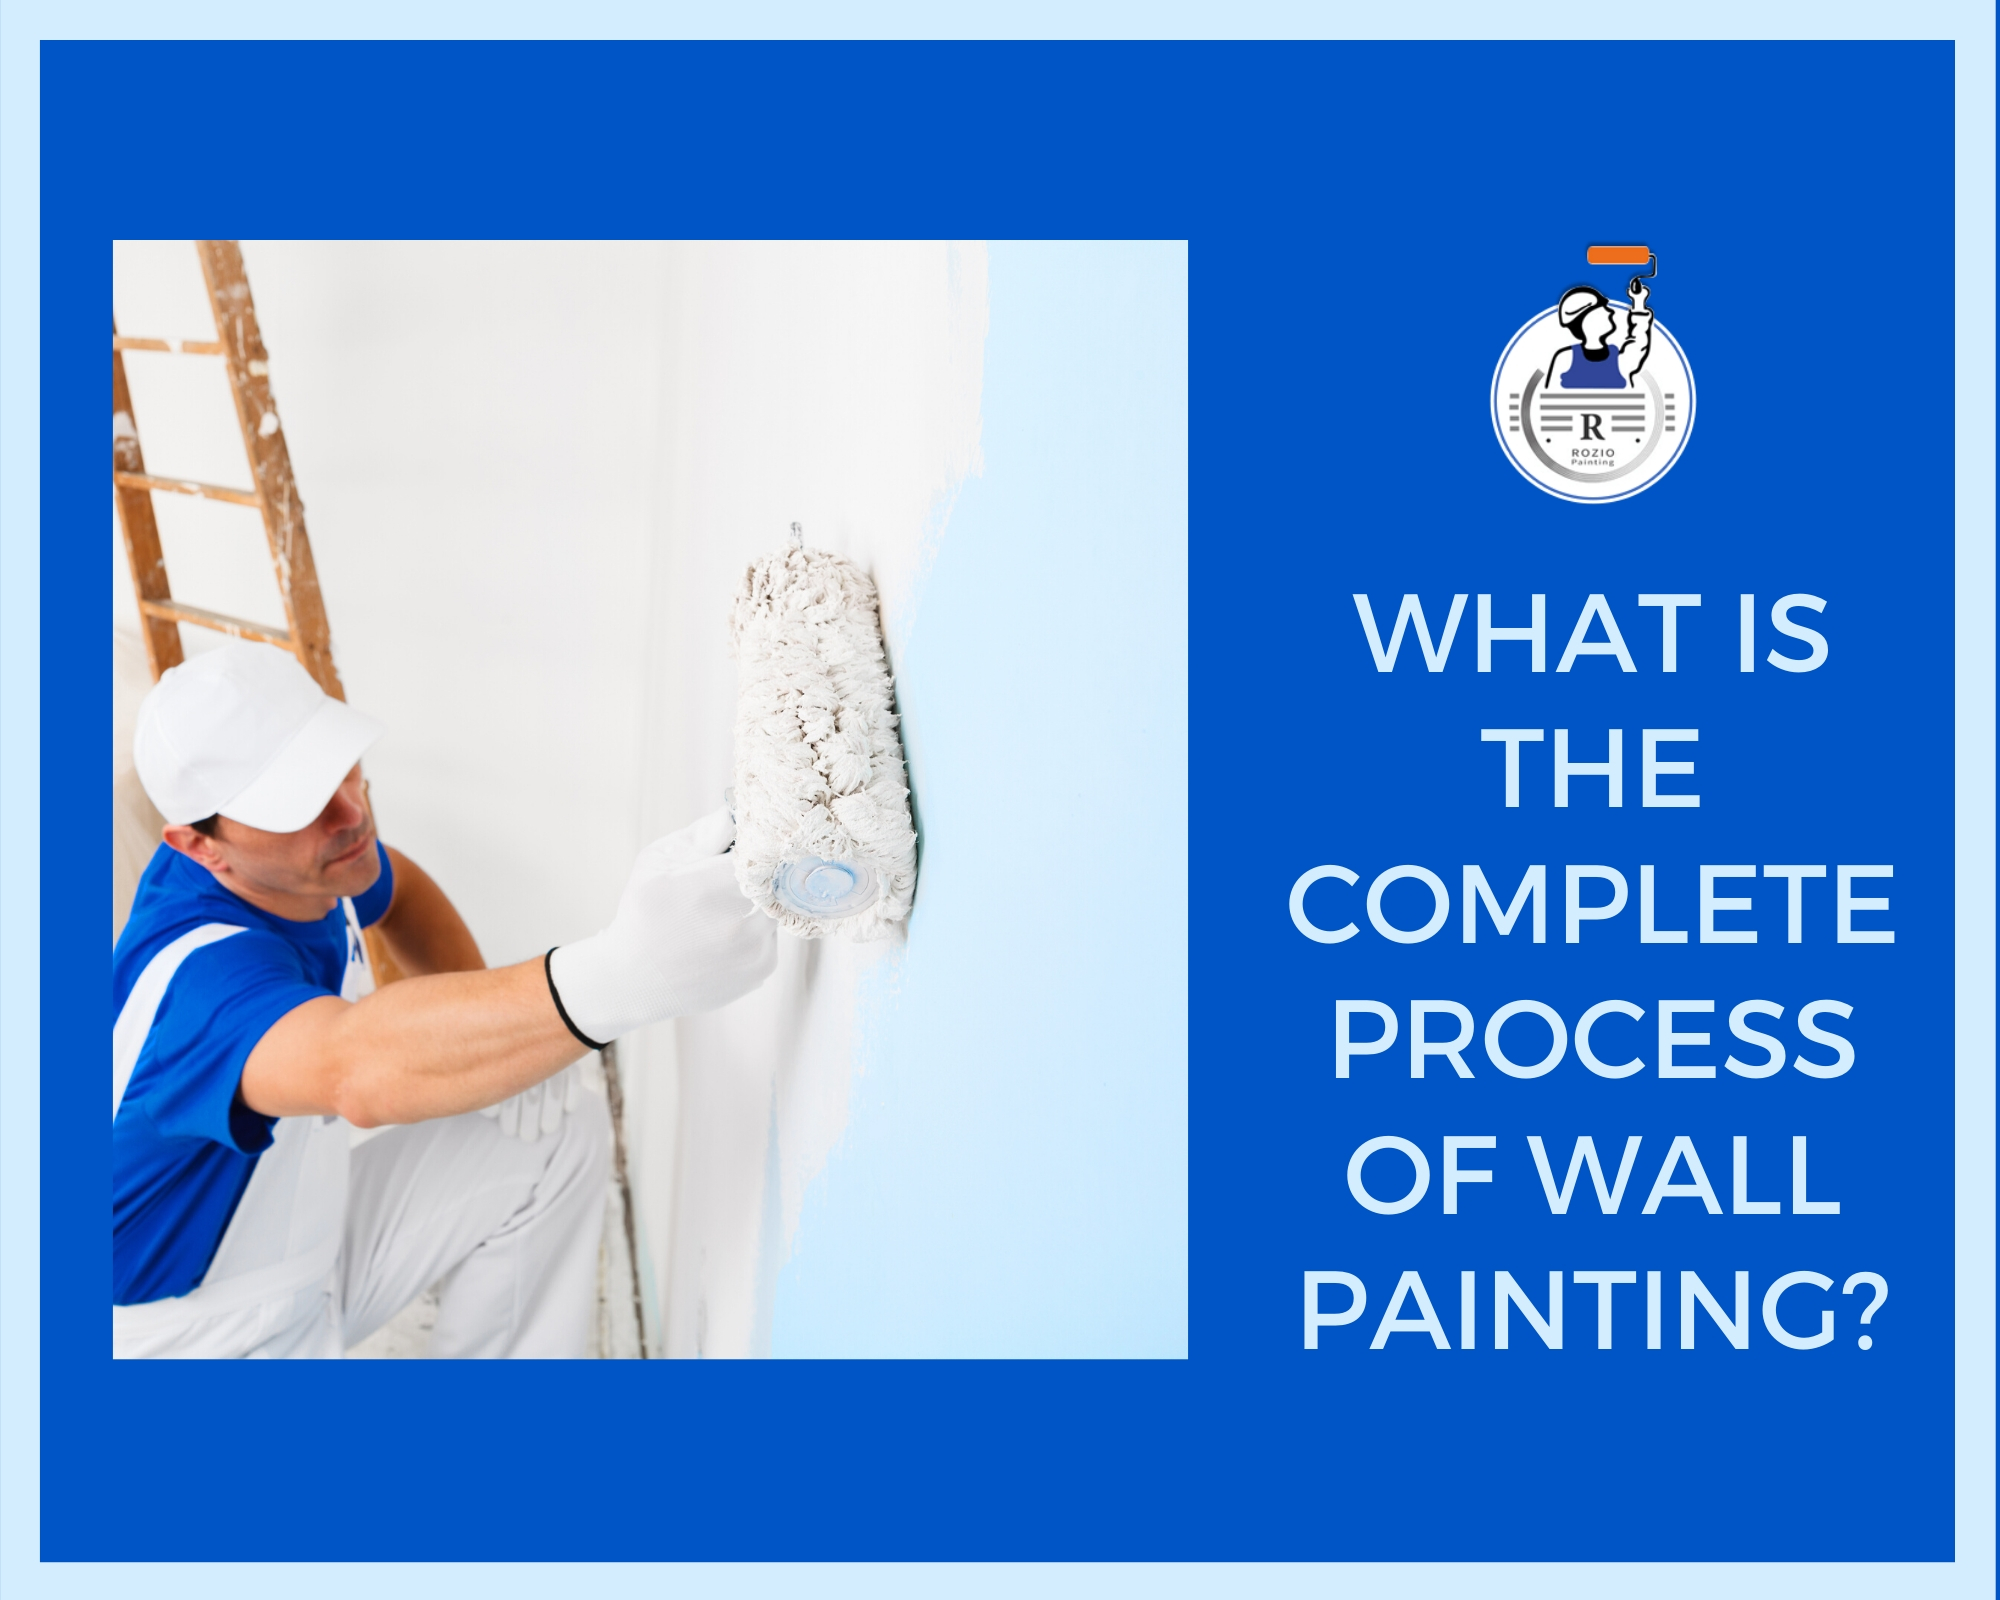 What is the complete process of wall painting